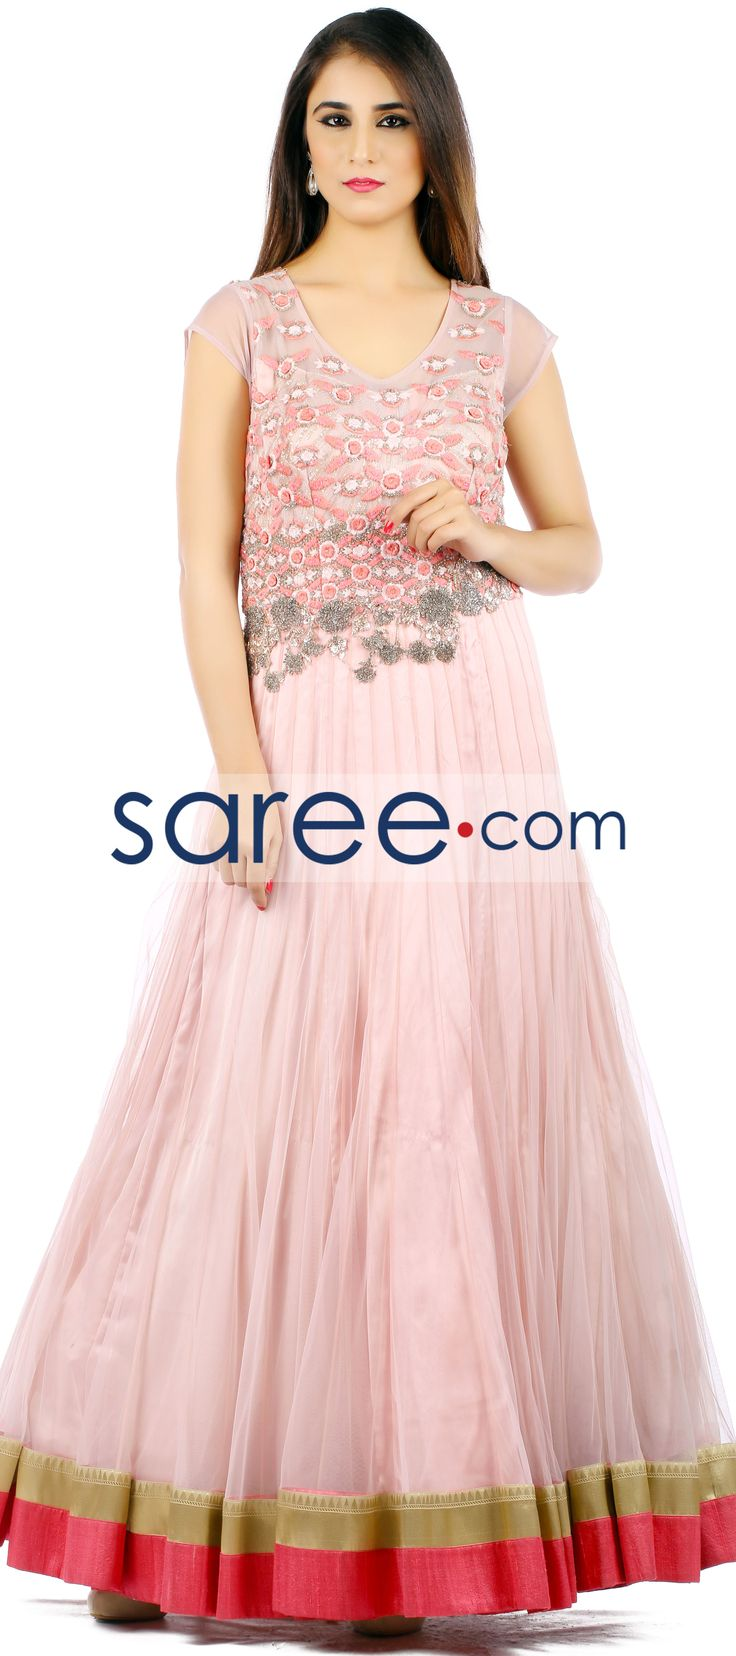 PINK NET GOWN WITH EMBROIDERY WORK   #Gown #PartywearGown #ReceptionGown #IndoWestern #IndoWesternGown